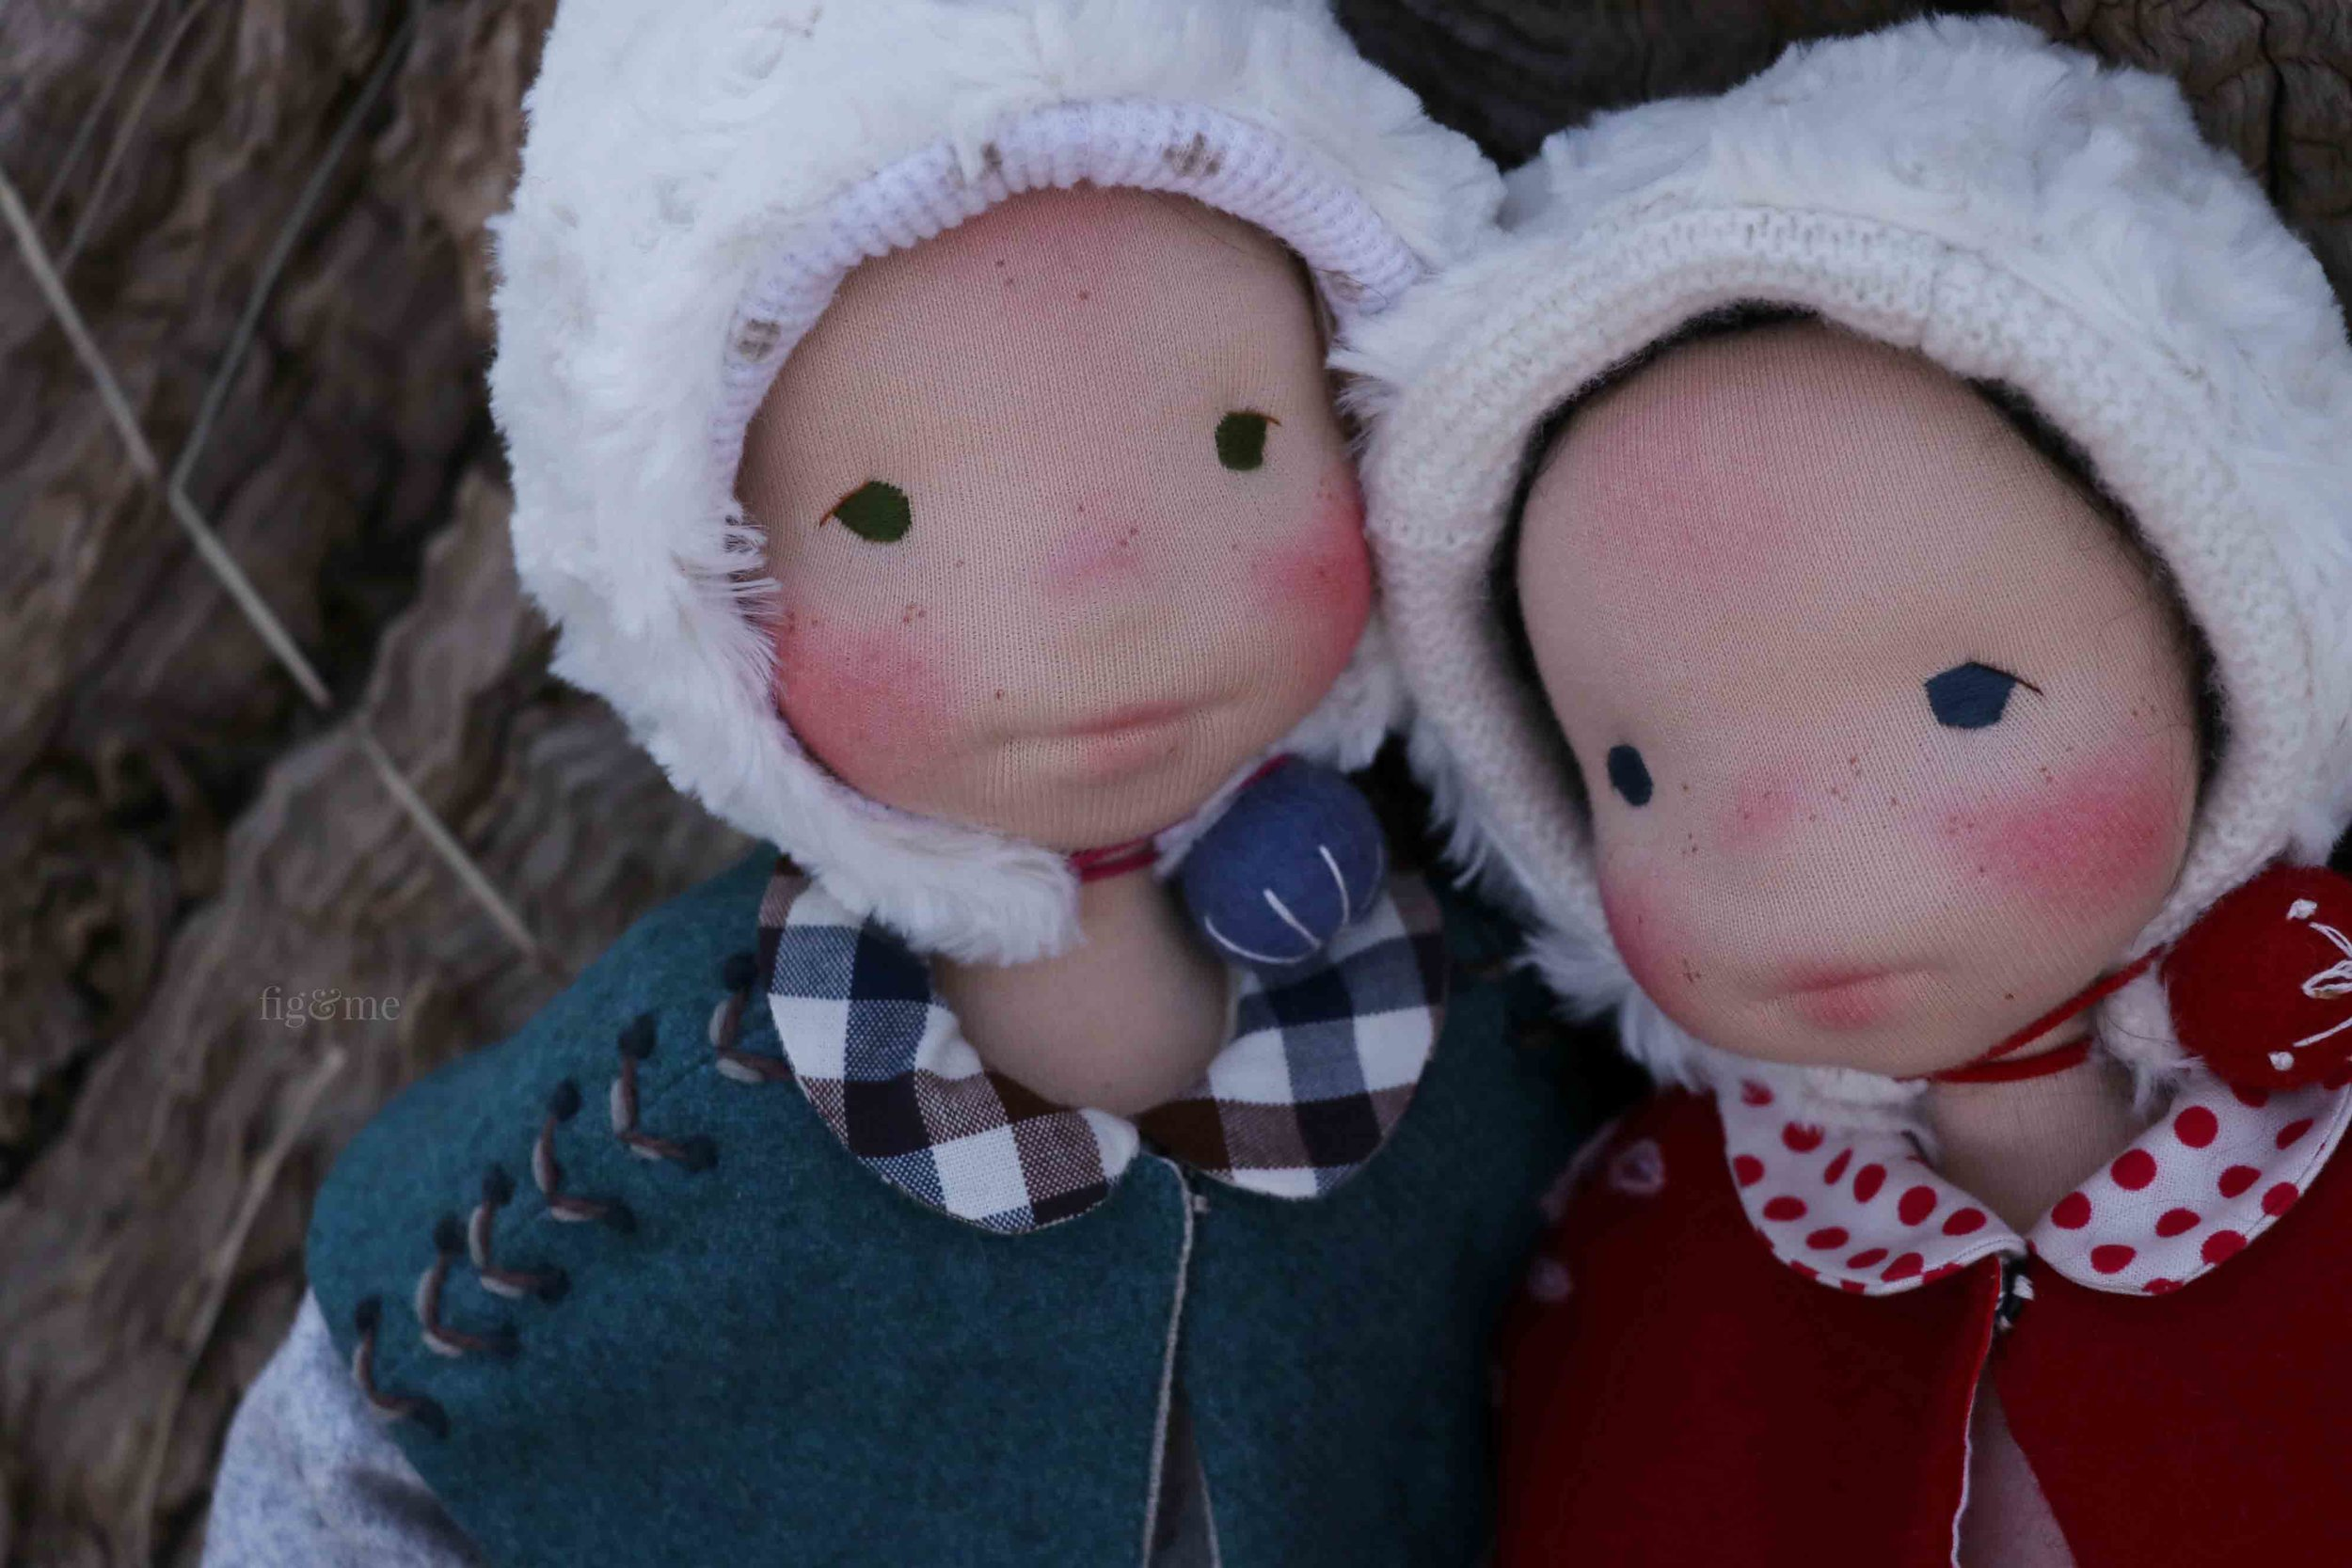 Snow White and her sister Rose Red, two natural fiber art dolls by Fig and Me.